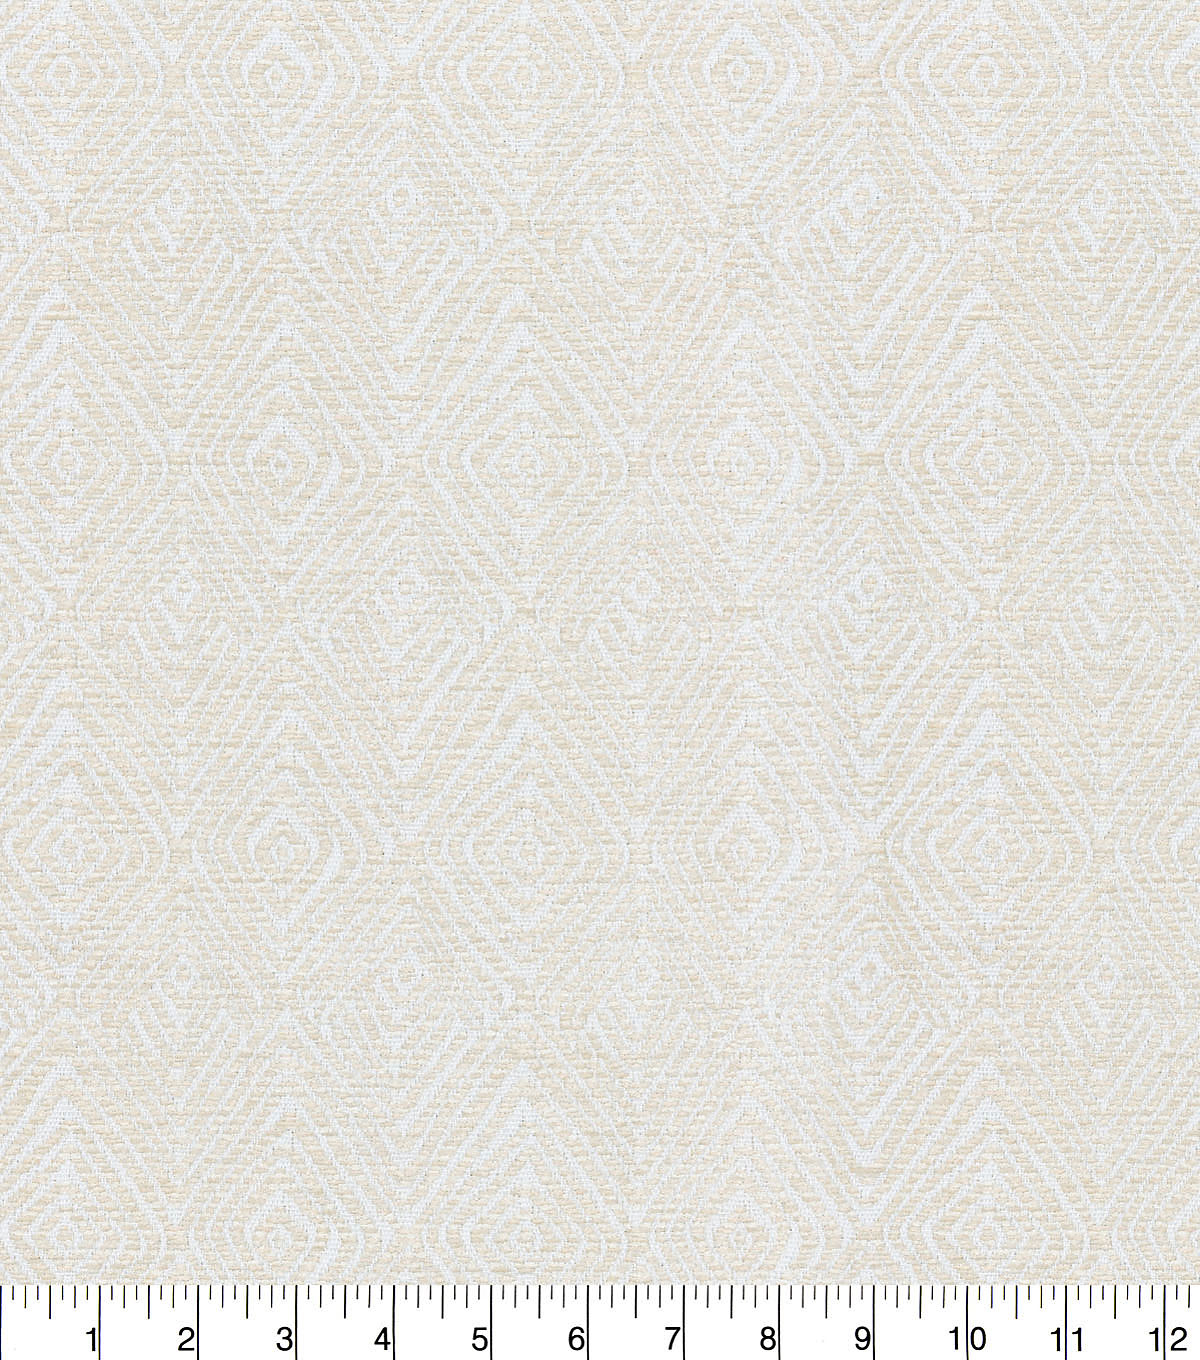 Kelly Ripa Home Upholstery Swatch 13\u0027\u0027x13\u0027\u0027-Ivory Set In Motion